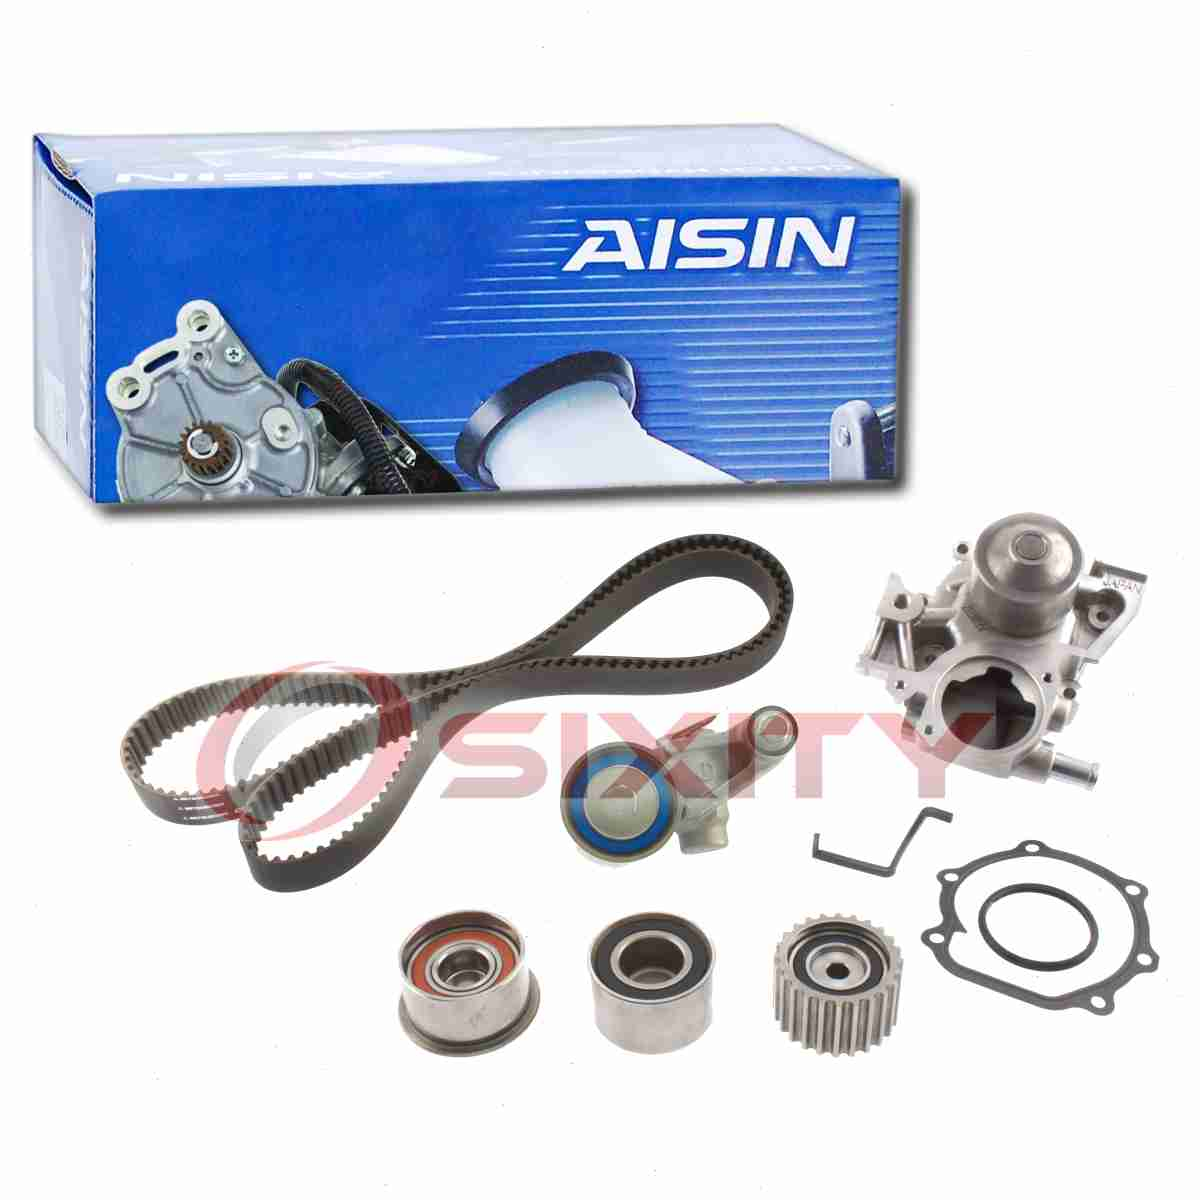 ee AISIN Timing Belt Kit w// Water Pump for 1999-2005 Subaru Forester 2.5L H4